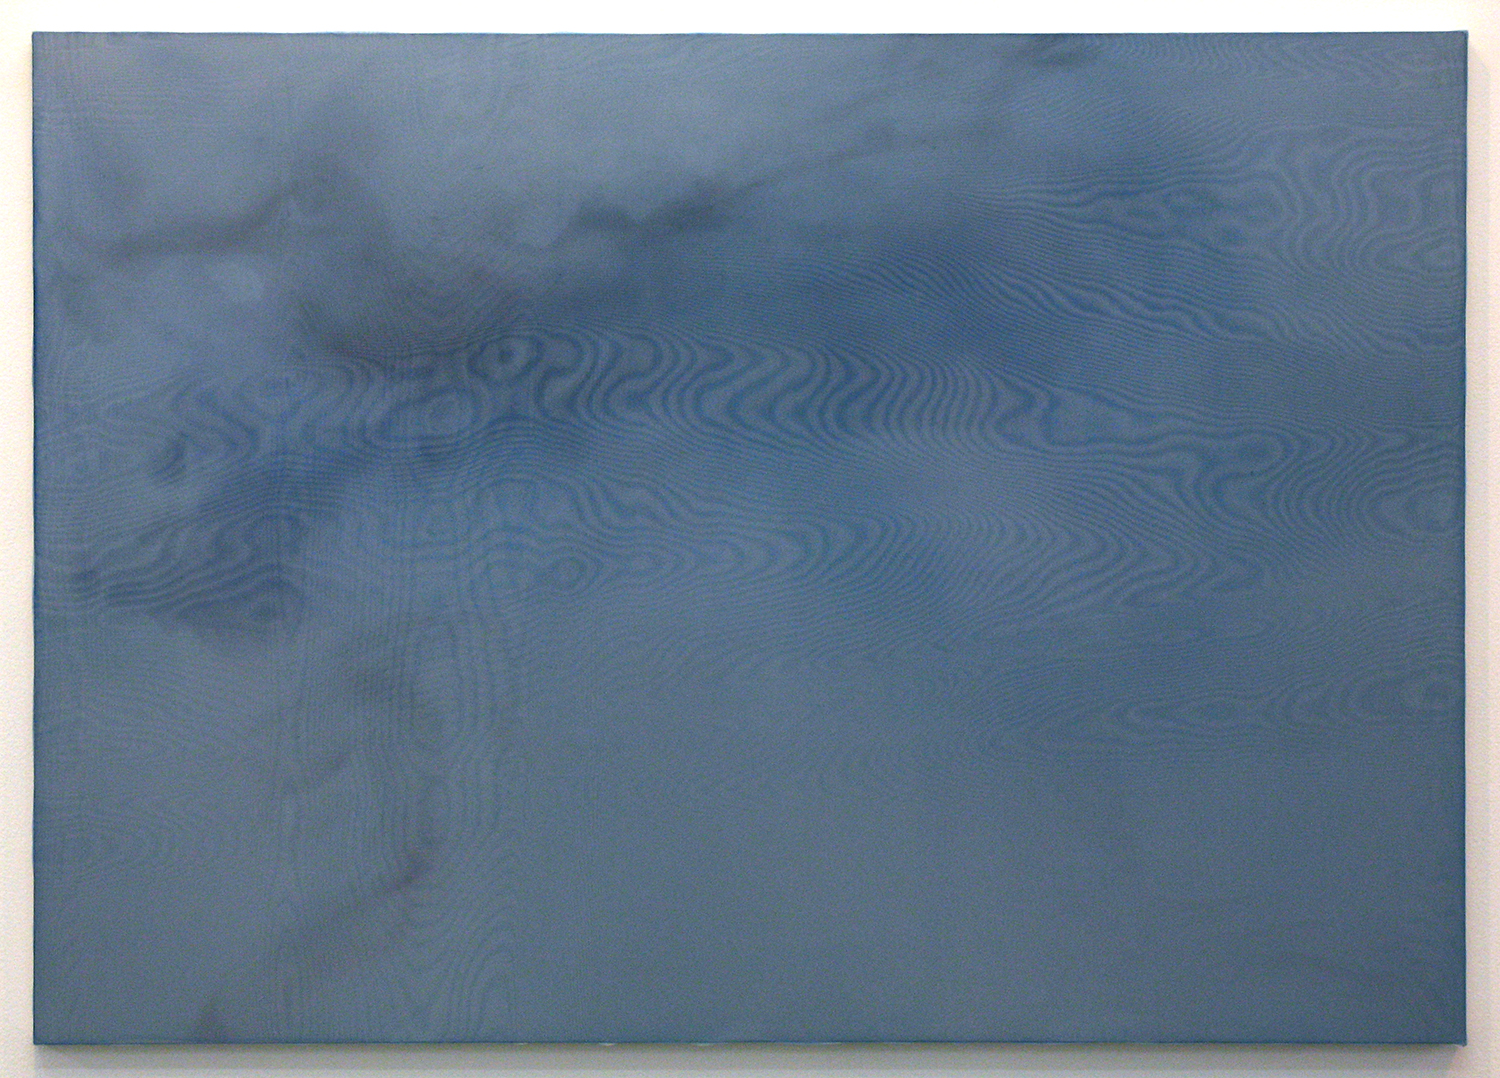 afterglow #7|残光 #7|panel, stainless steel sheet, glass organdy, acrylic|594 x 840 mm|2008